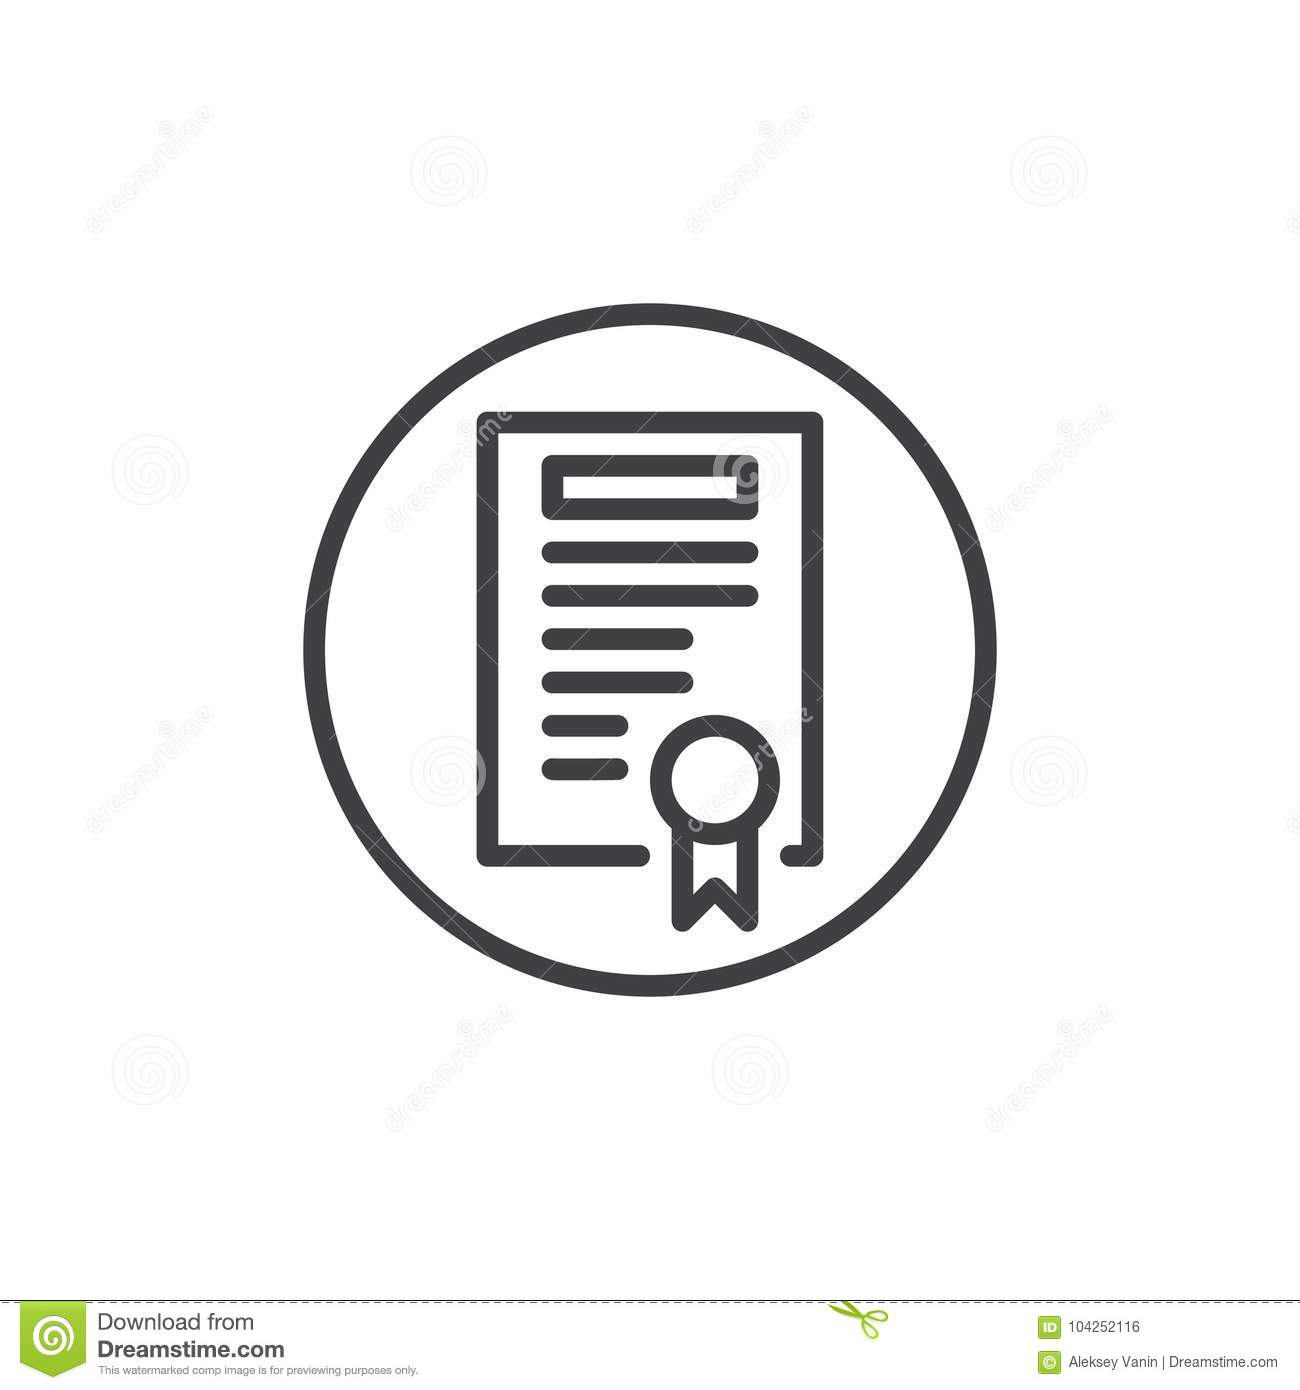 Certificate With Badge Line Icon Stock Vector Illustration Of